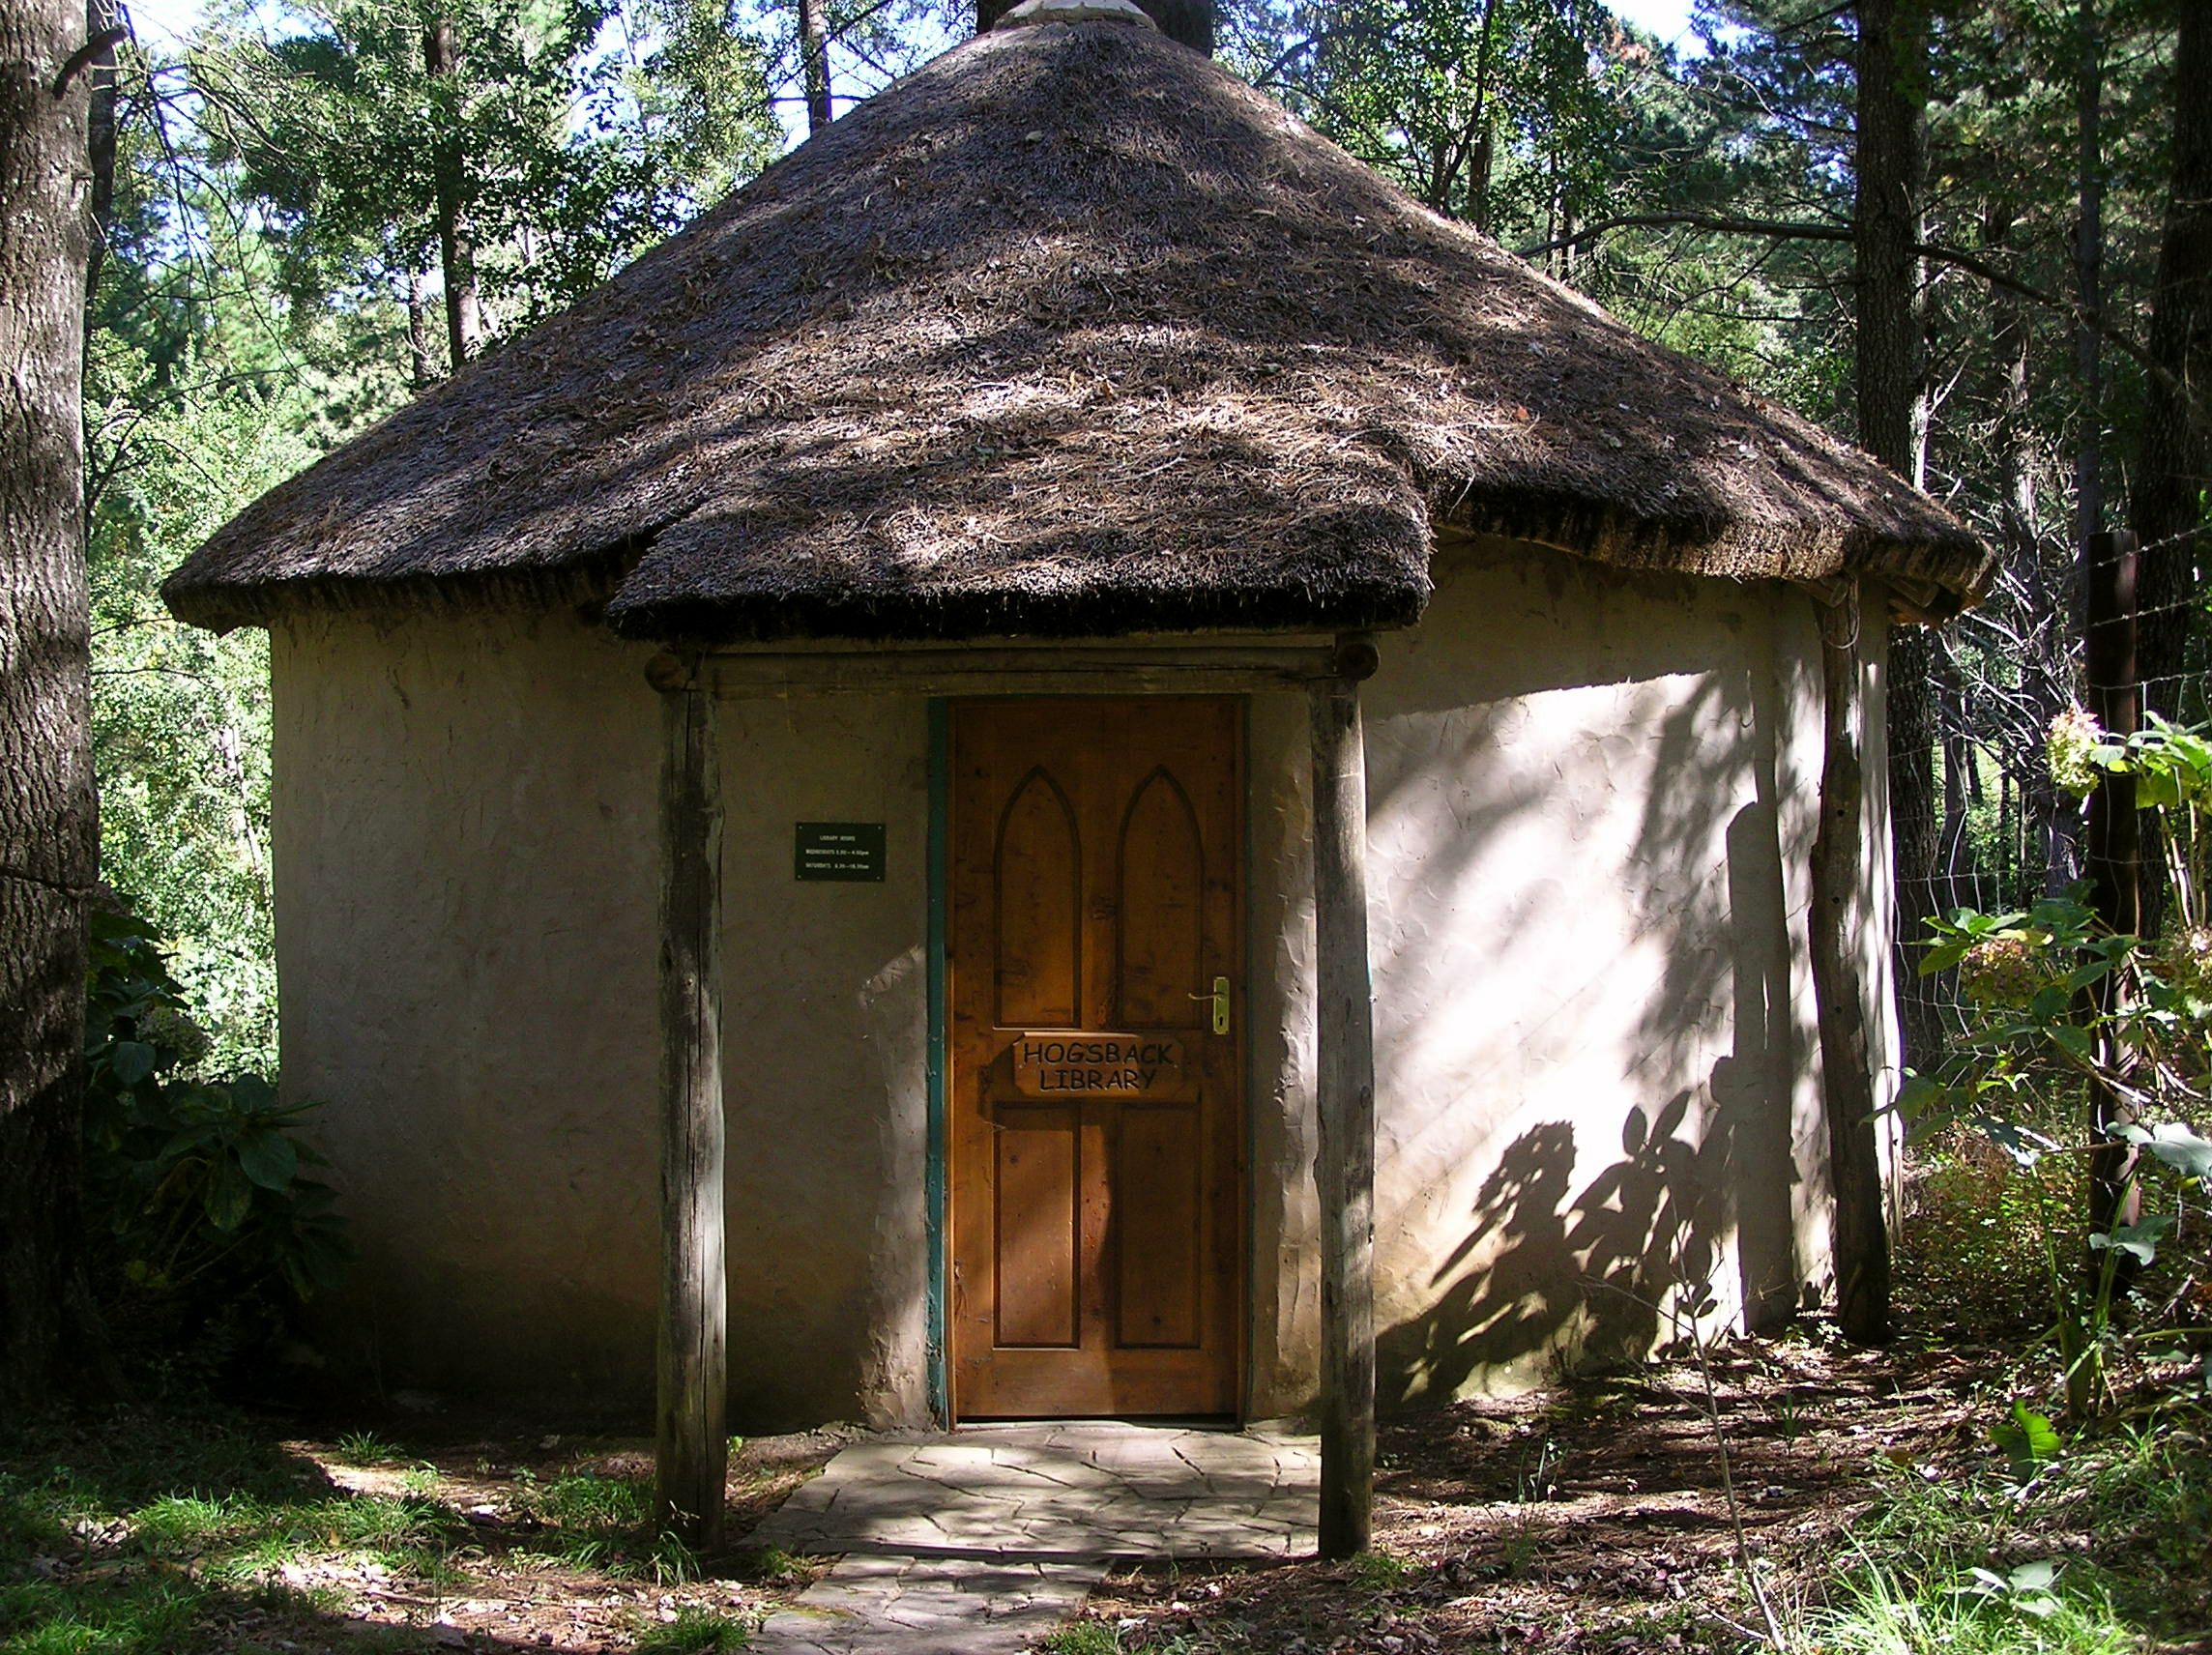 Hogsback Library, South Africa. This is a tiny, thatched